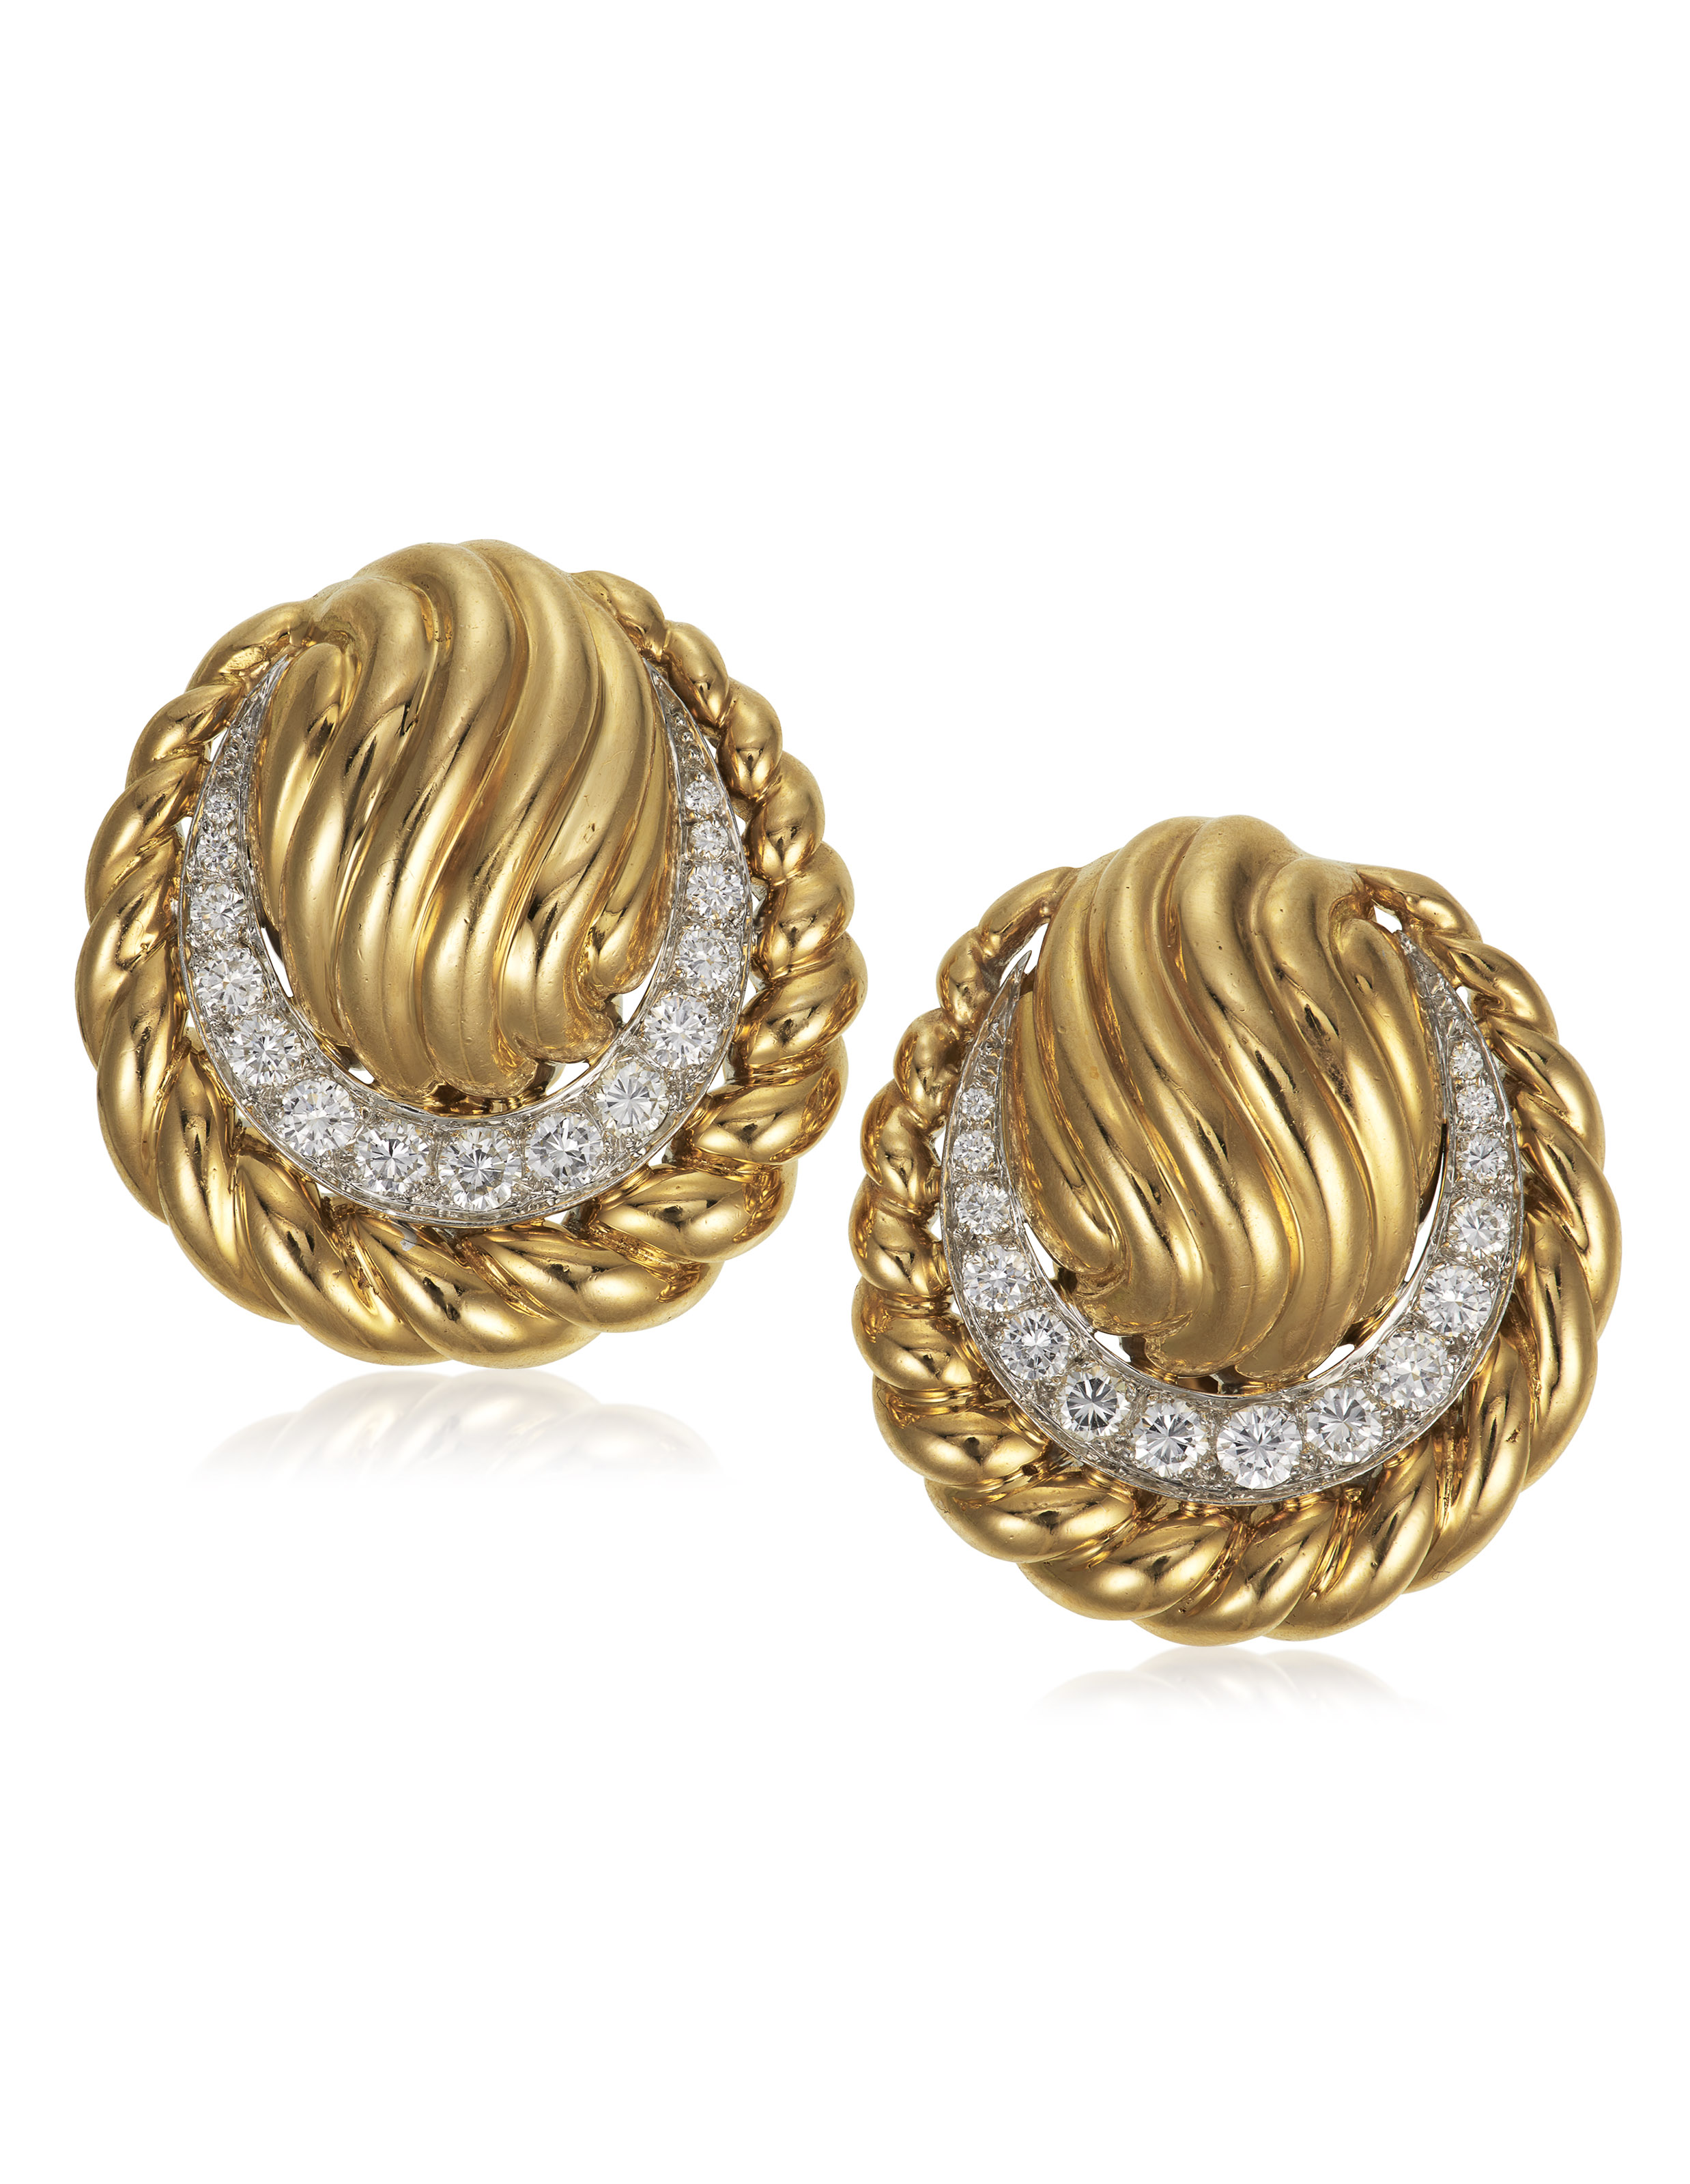 Gold and diamond earrings, by David Webb. Sold for $6,000 on10 February 2021, Online